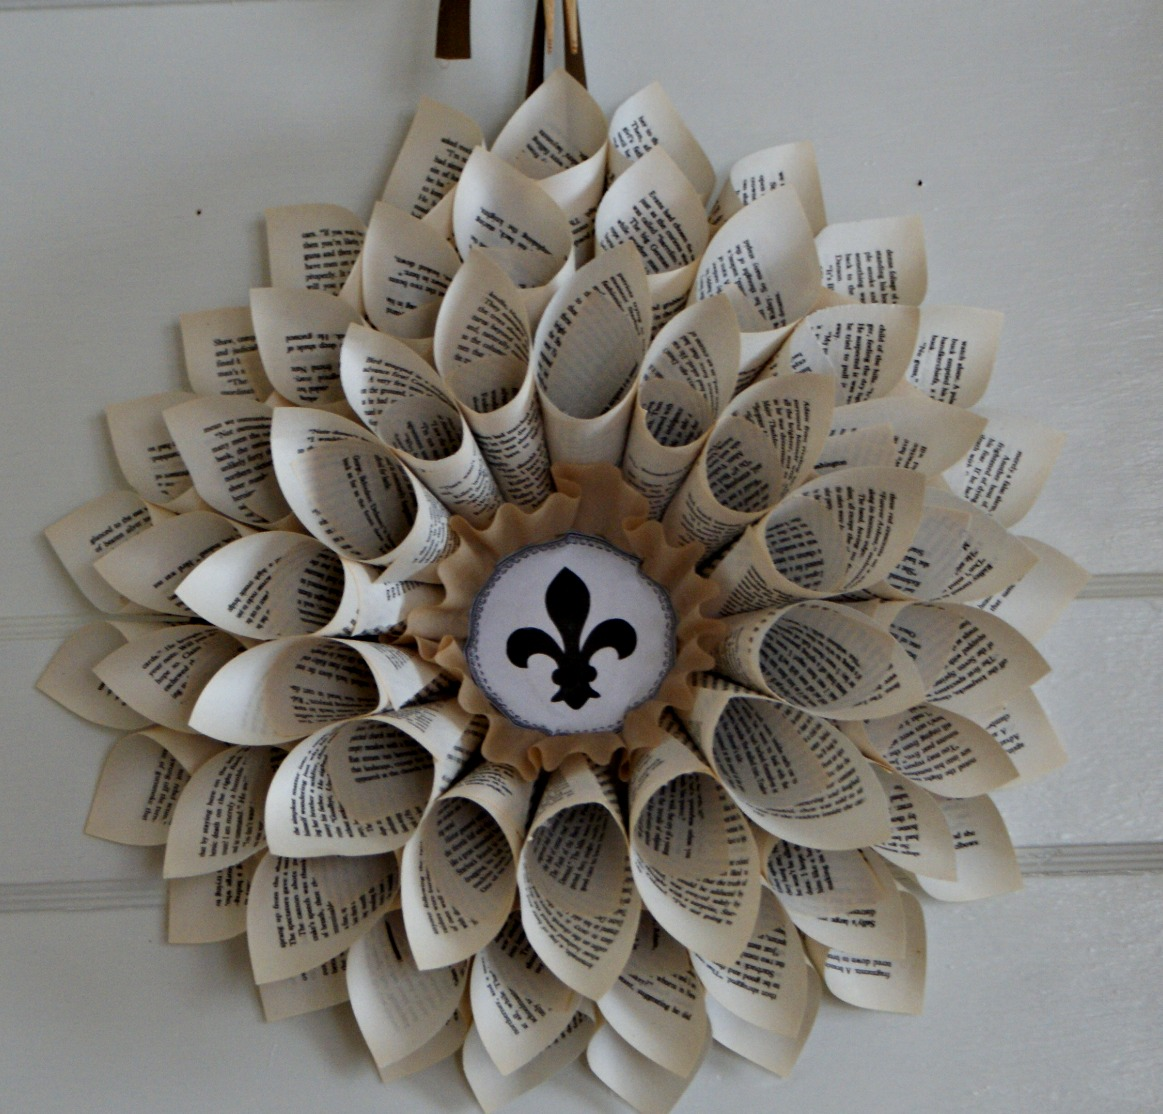 10 beautiful diy book page christmas decorations you can make yourself - Book Page Decorations